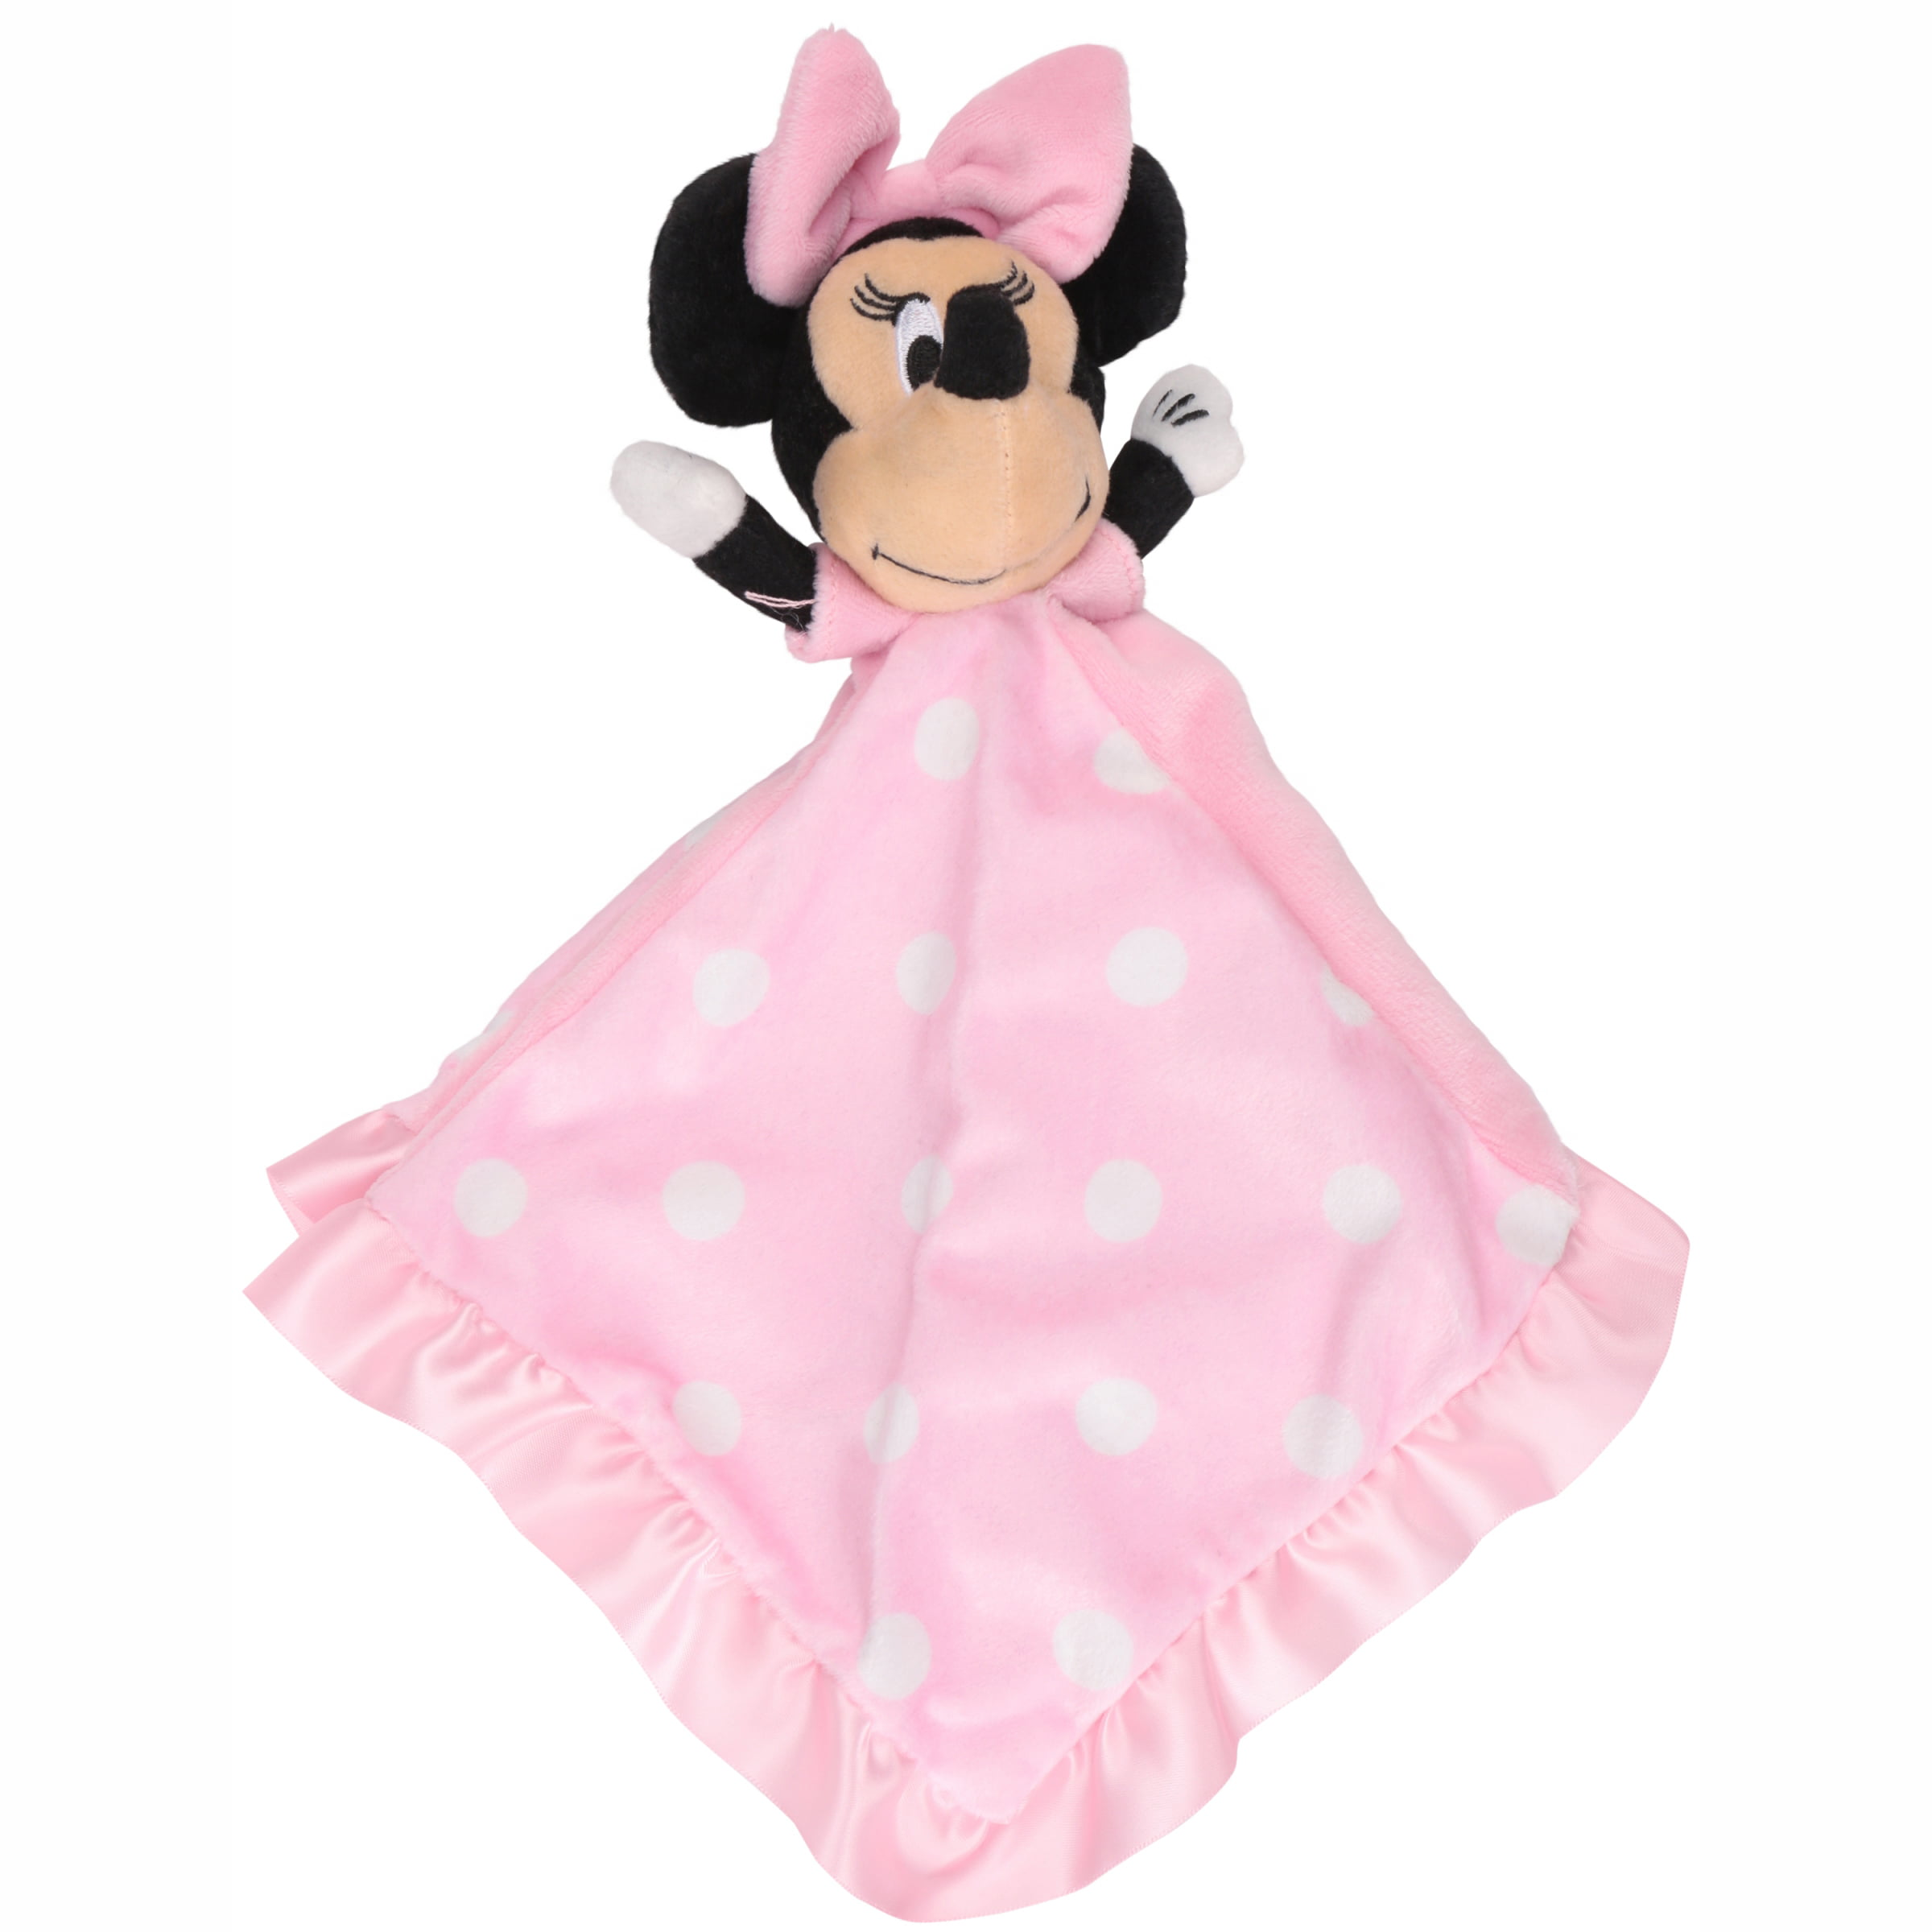 18 inch doll blanket and pillow. Bed, doll and Minnie stuff toy not included.